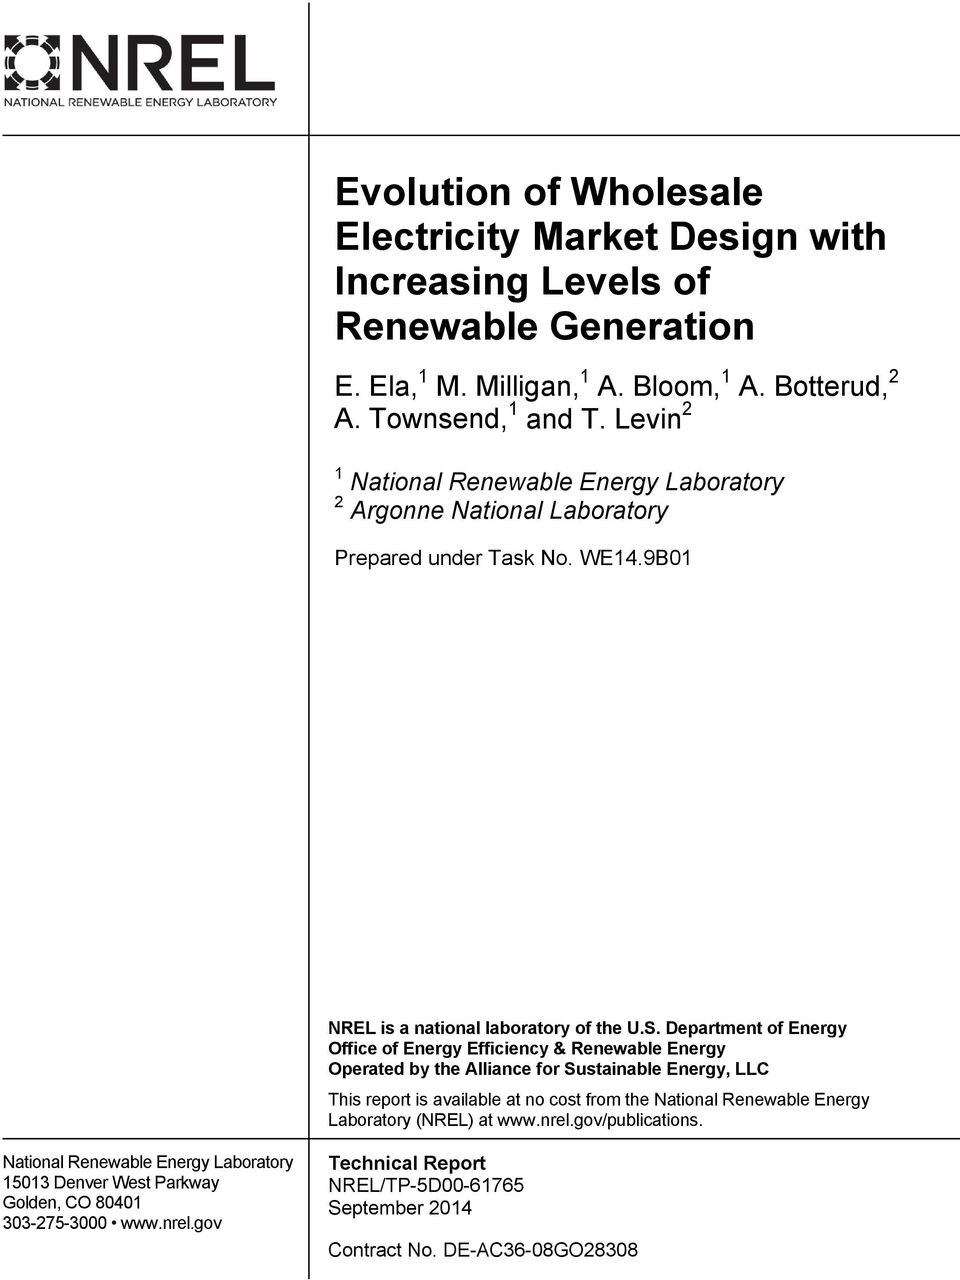 Department of Energy Office of Energy Efficiency & Renewable Energy Operated by the Alliance for Sustainable Energy, LLC This report is available at no cost from the National Renewable